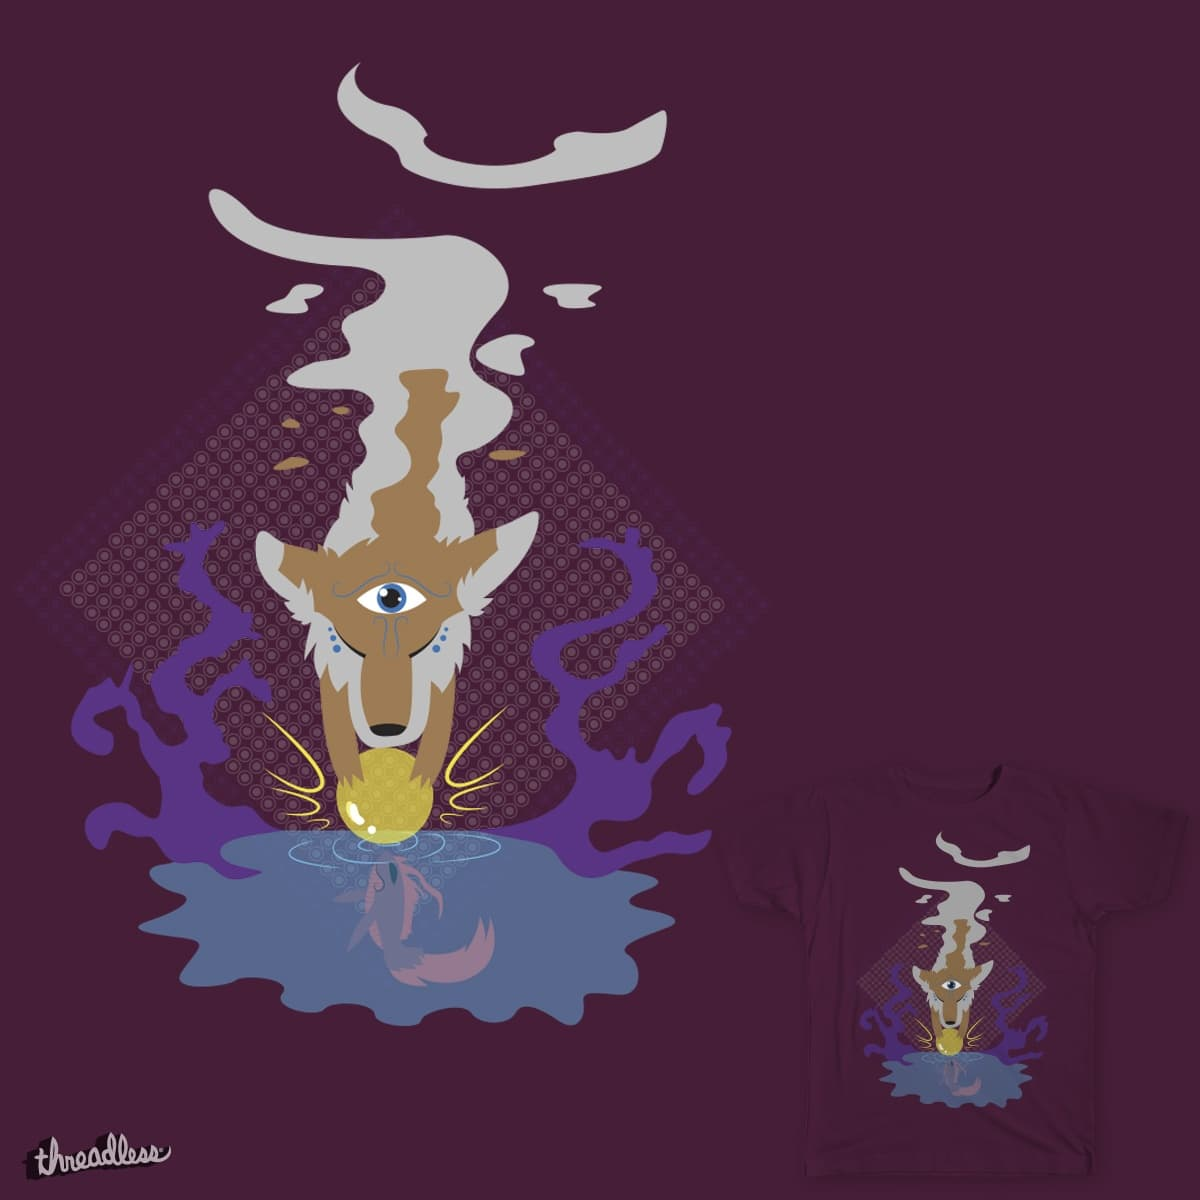 Temped by TomSilverton on Threadless